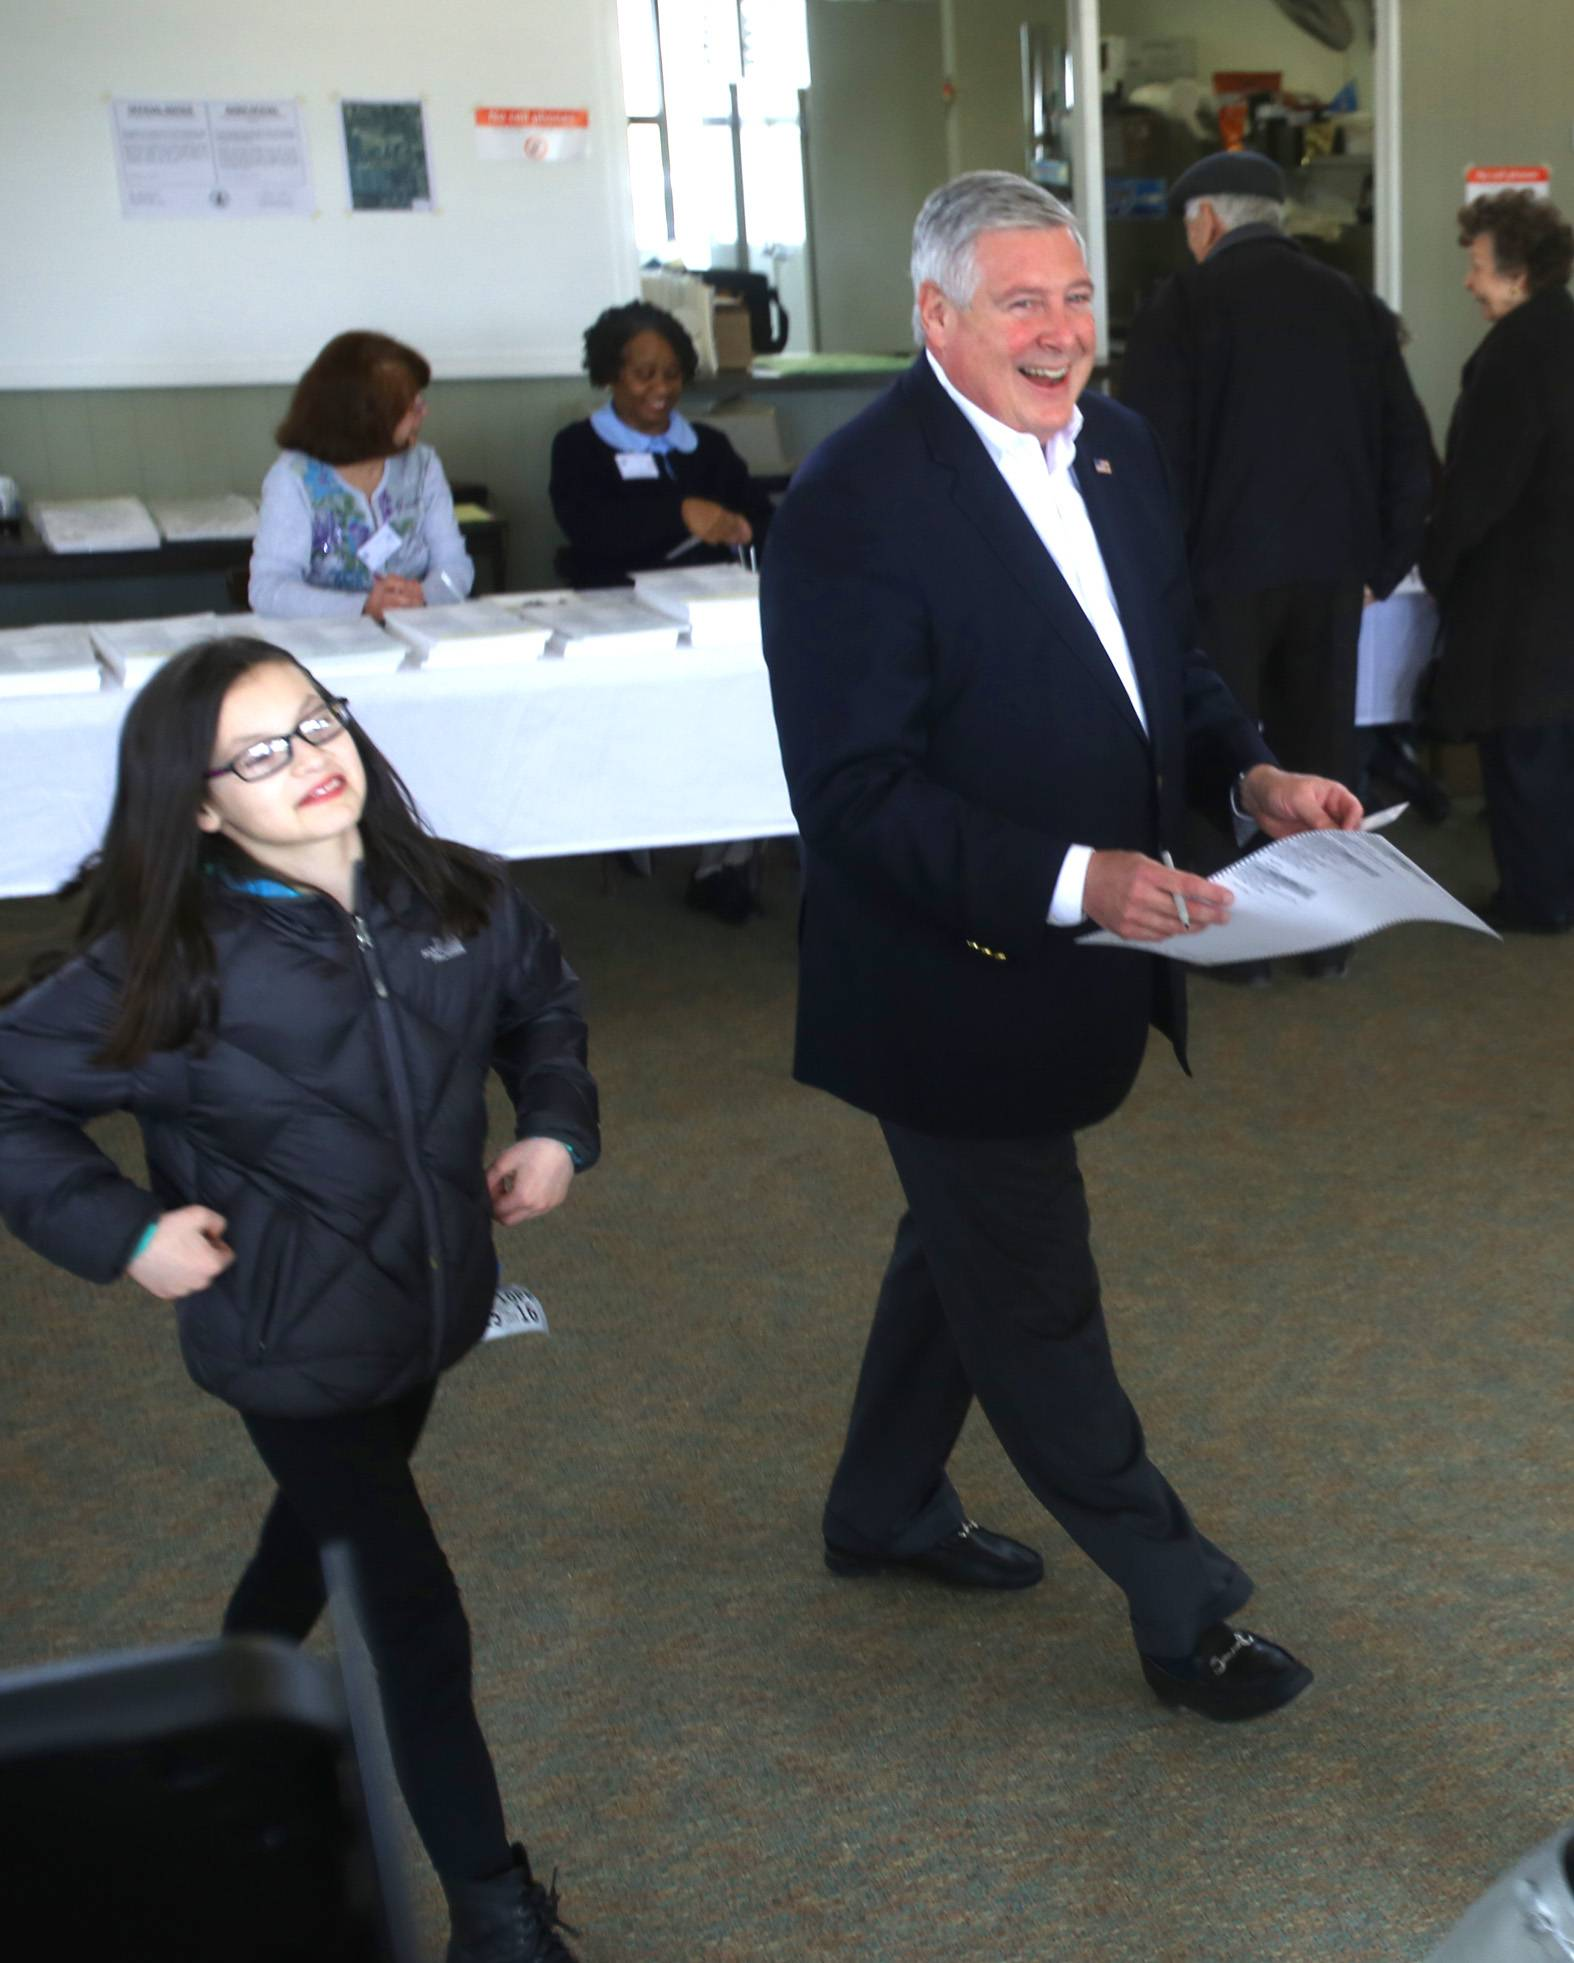 State Sen. Kirk Dillard casts his ballot at the Salt Creek Club in Hinsdale. His daughter Ava, 10, is at his side.